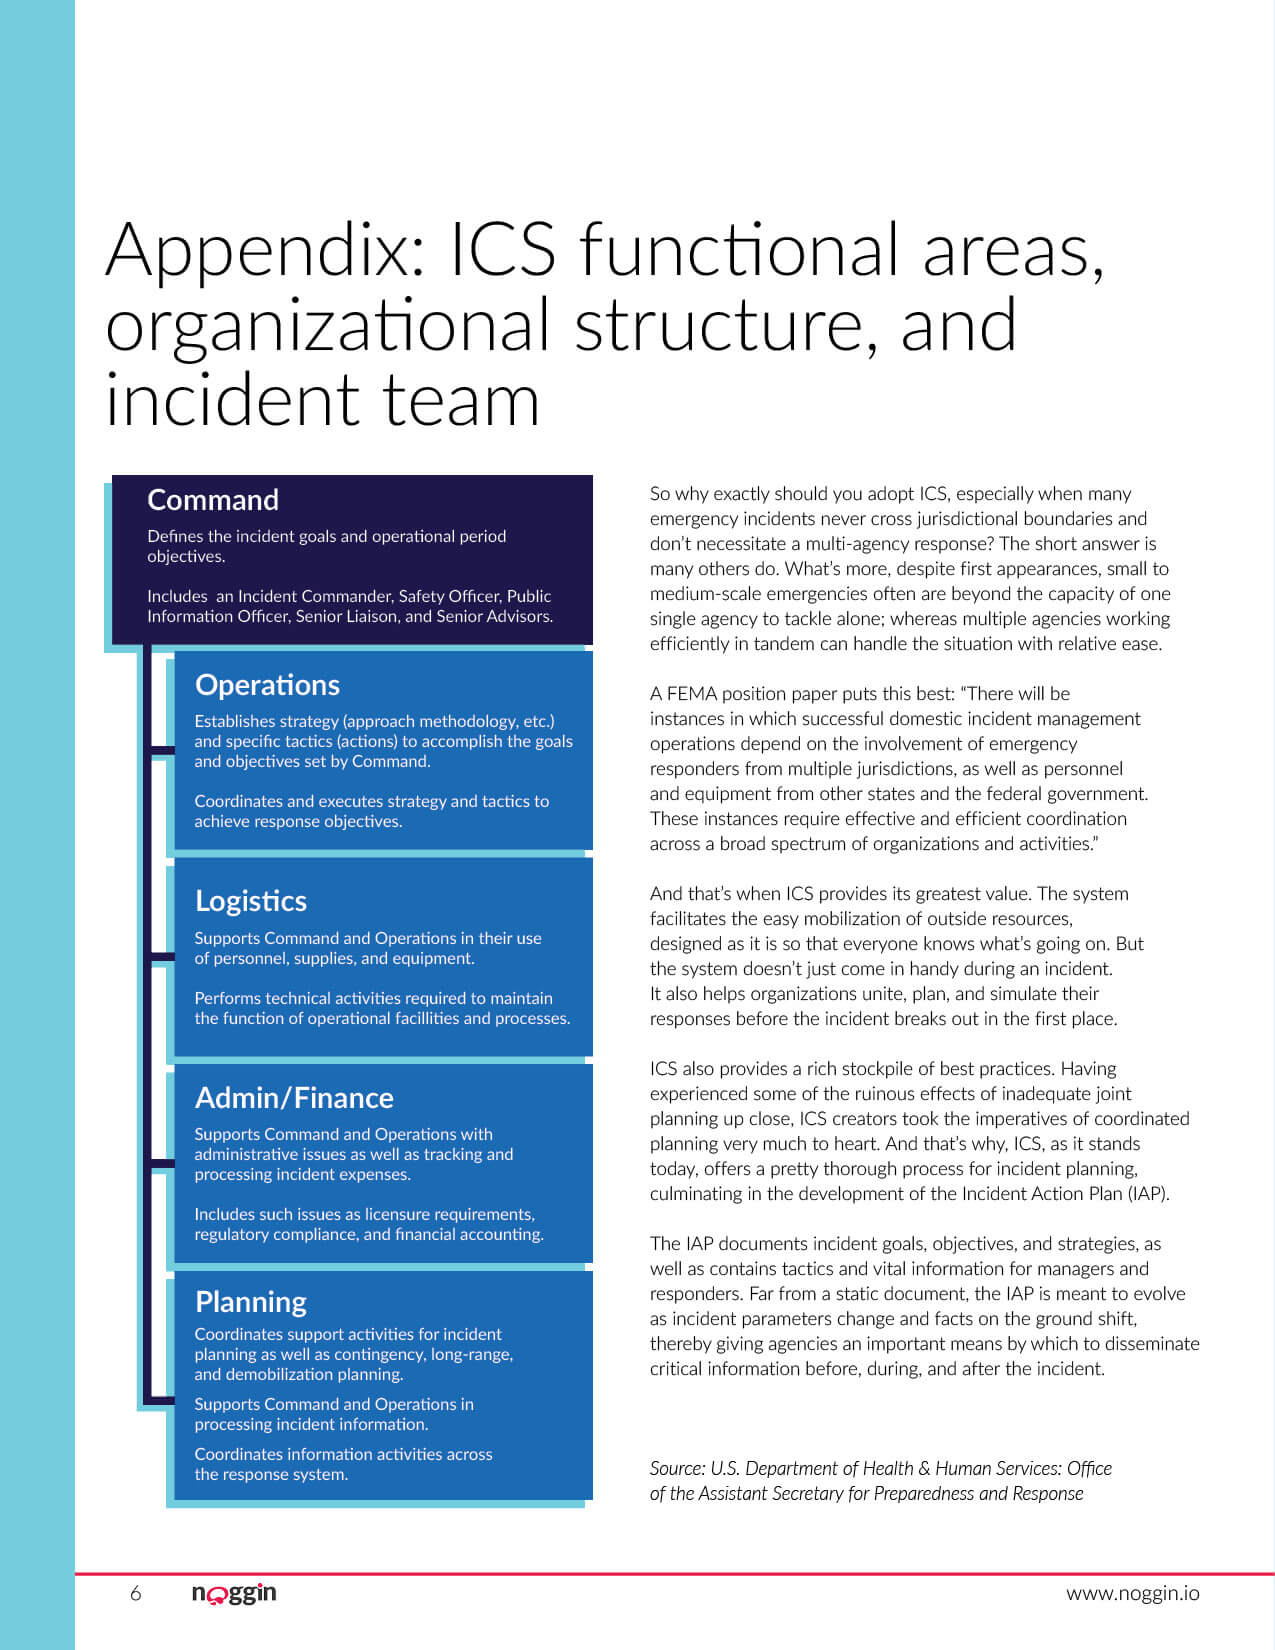 Noggin white paper guide on Understanding the Incident Command System. This was created to drive marketing qualified leads for the Noggin OCA product from the website. Page 6 of 10